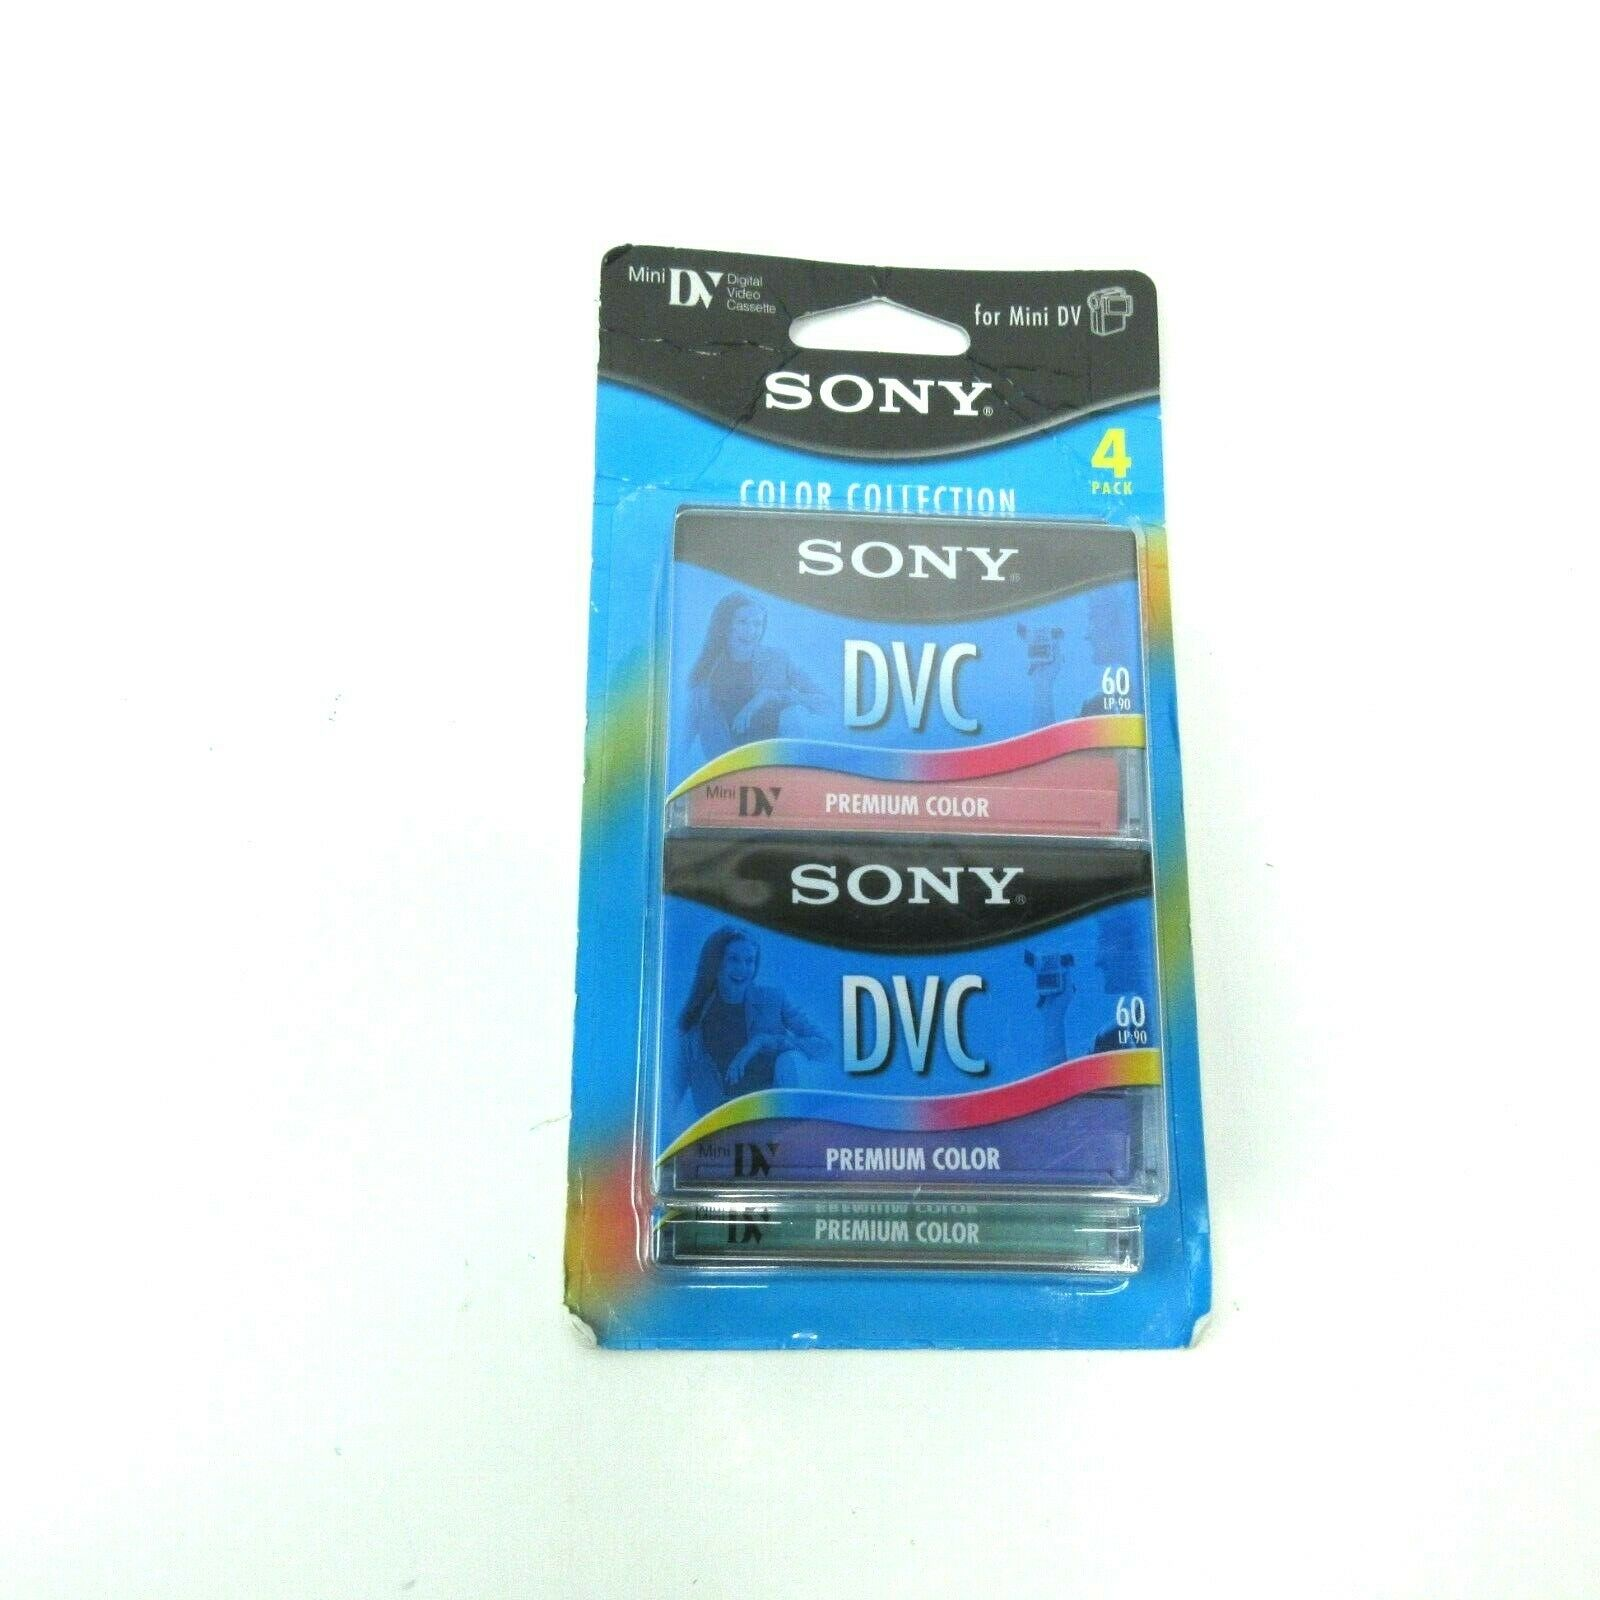 Sony 4 Pack DVC Digital Video Cassettes Mini DV Tapes 60 Minutes New - $16.99